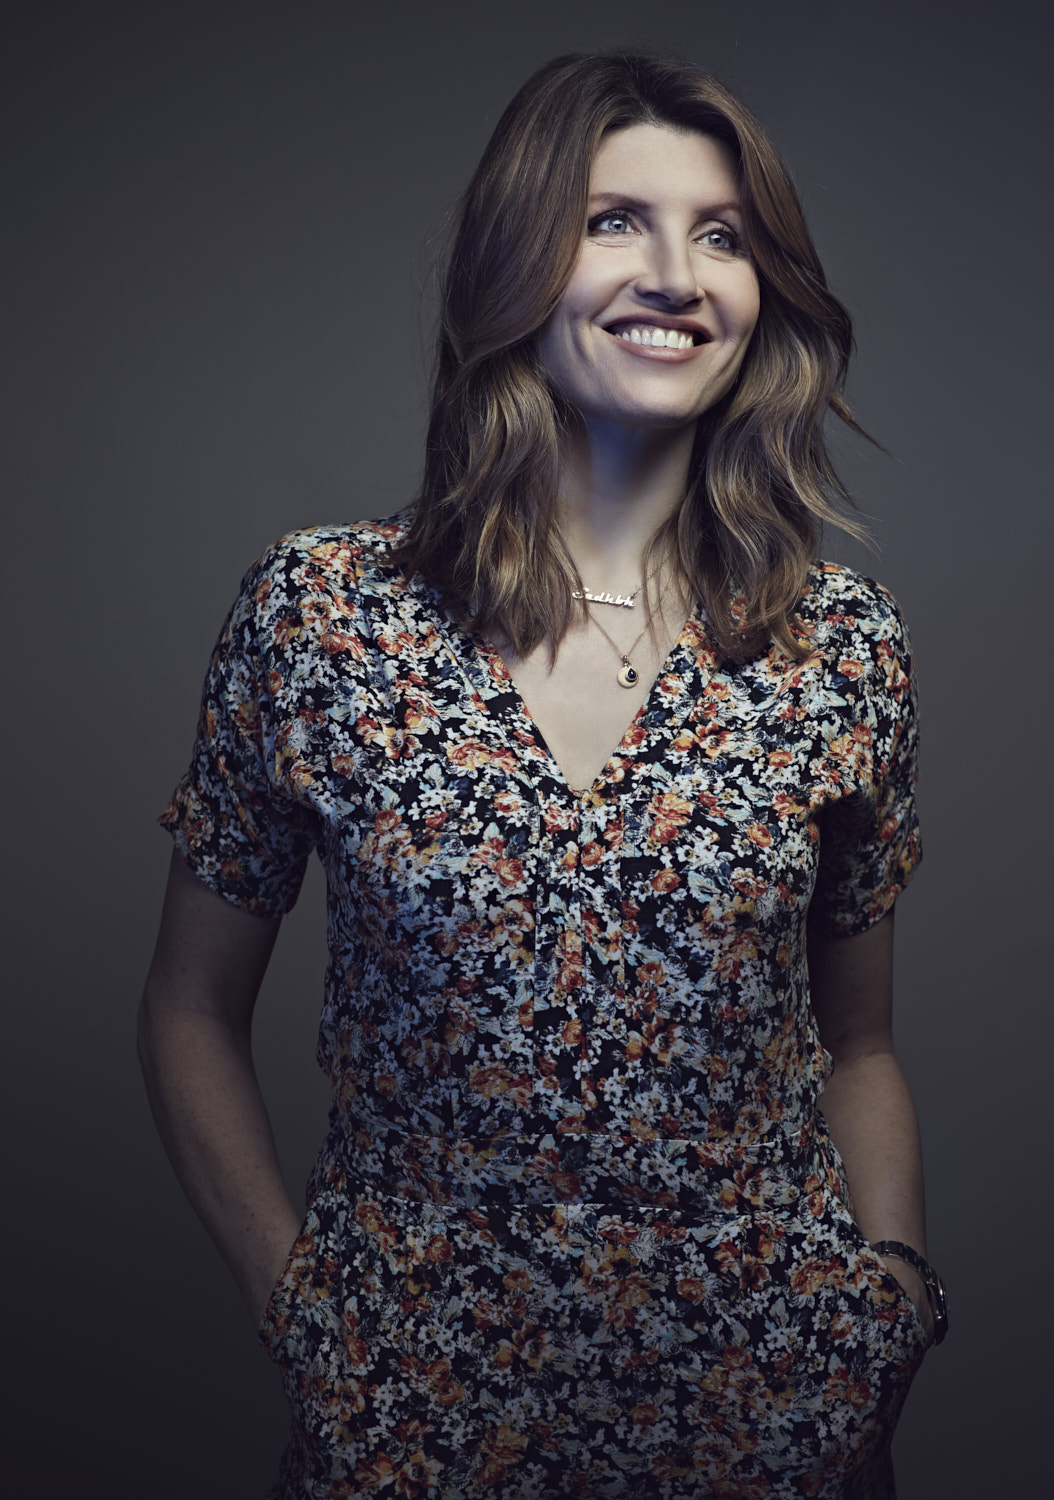 FredMacGregor_SharonHorgan_00001copy